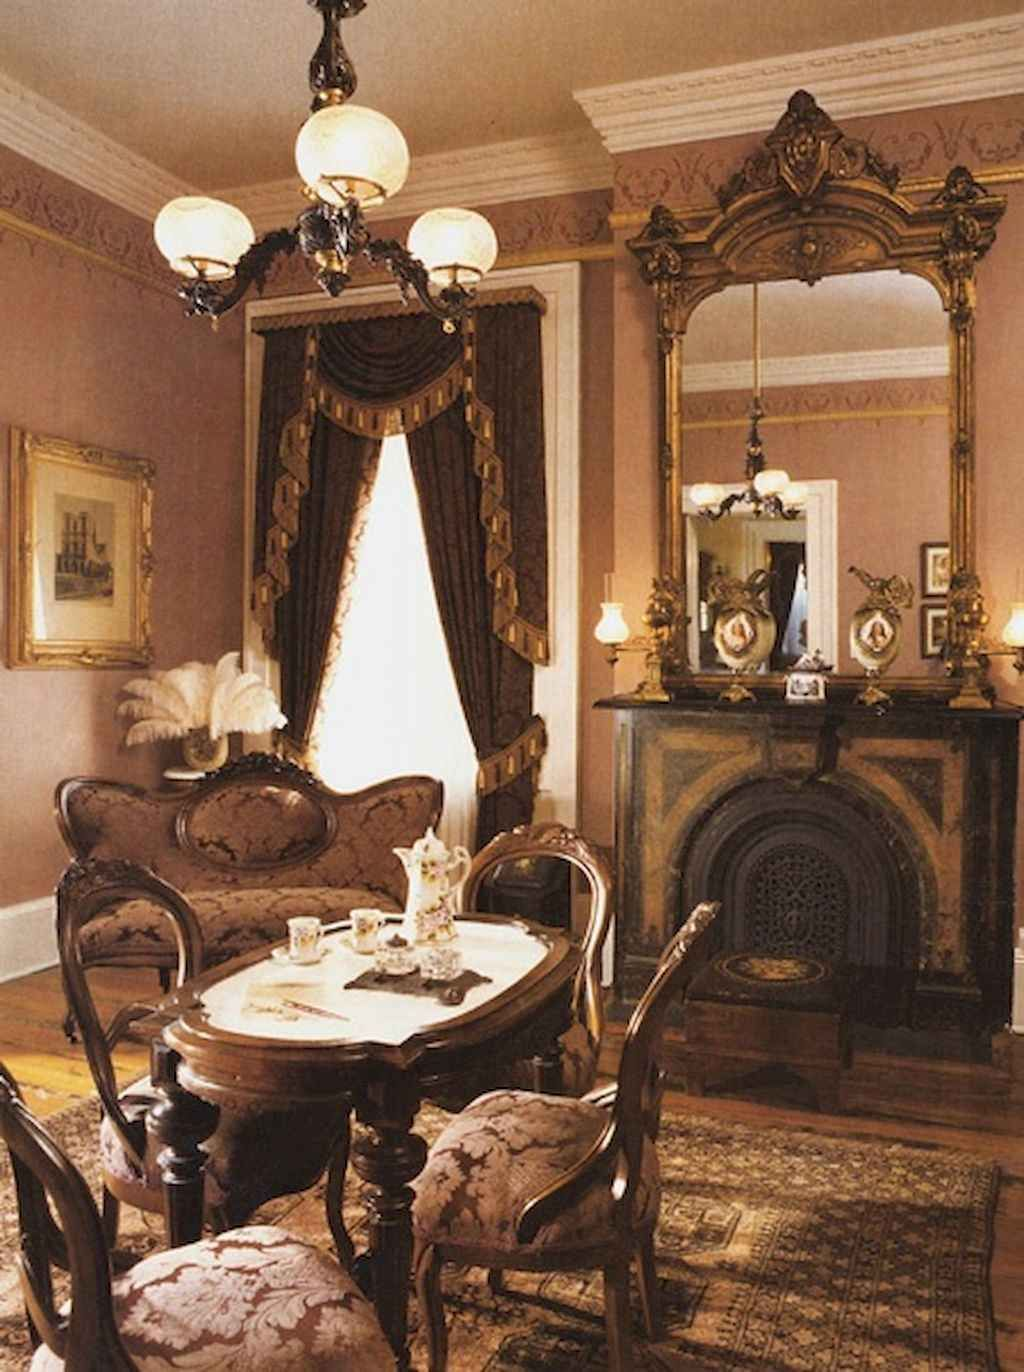 Adorable 130 Best Victorian Furniture Ideas For Farmhouse Style Design Source Link Https Victorian Home Decor Victorian House Interiors Victorian Living Room